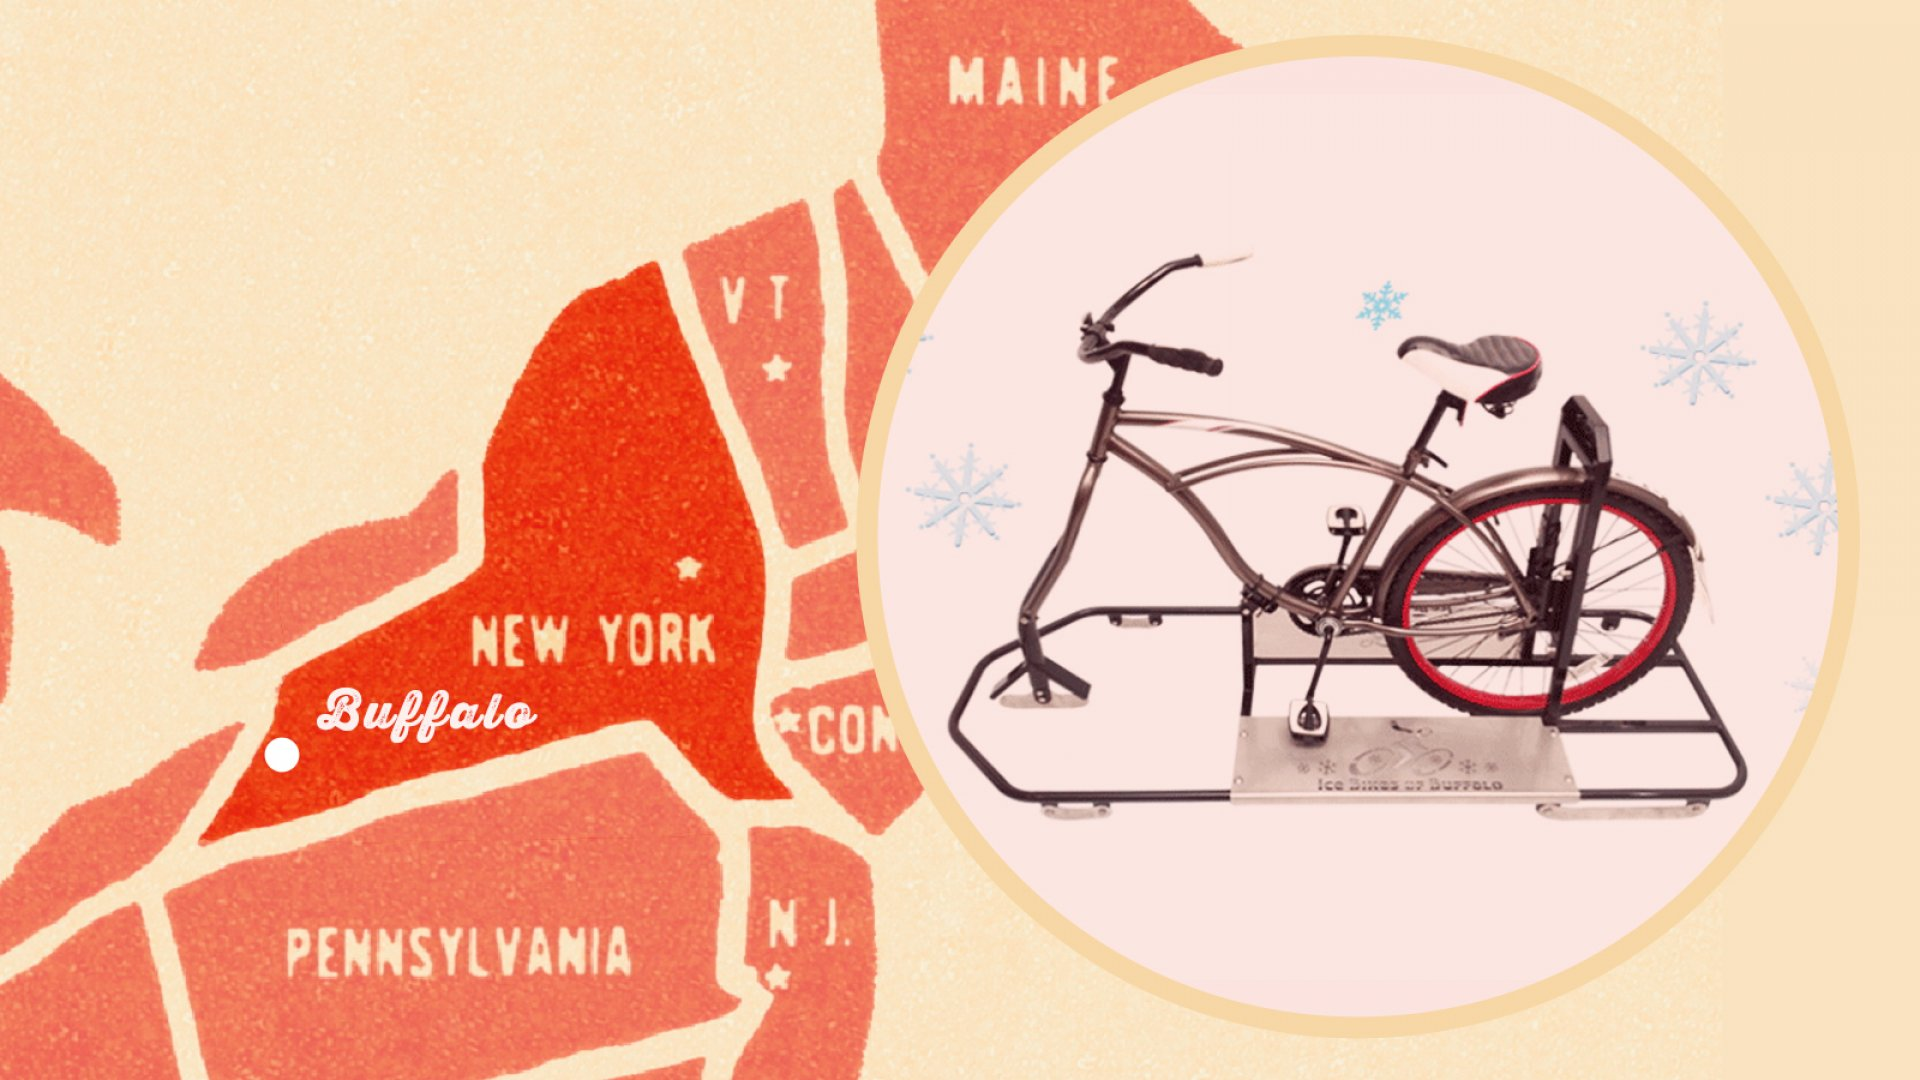 Meet the Bicycle Company That Could Have Been Born Only in Buffalo